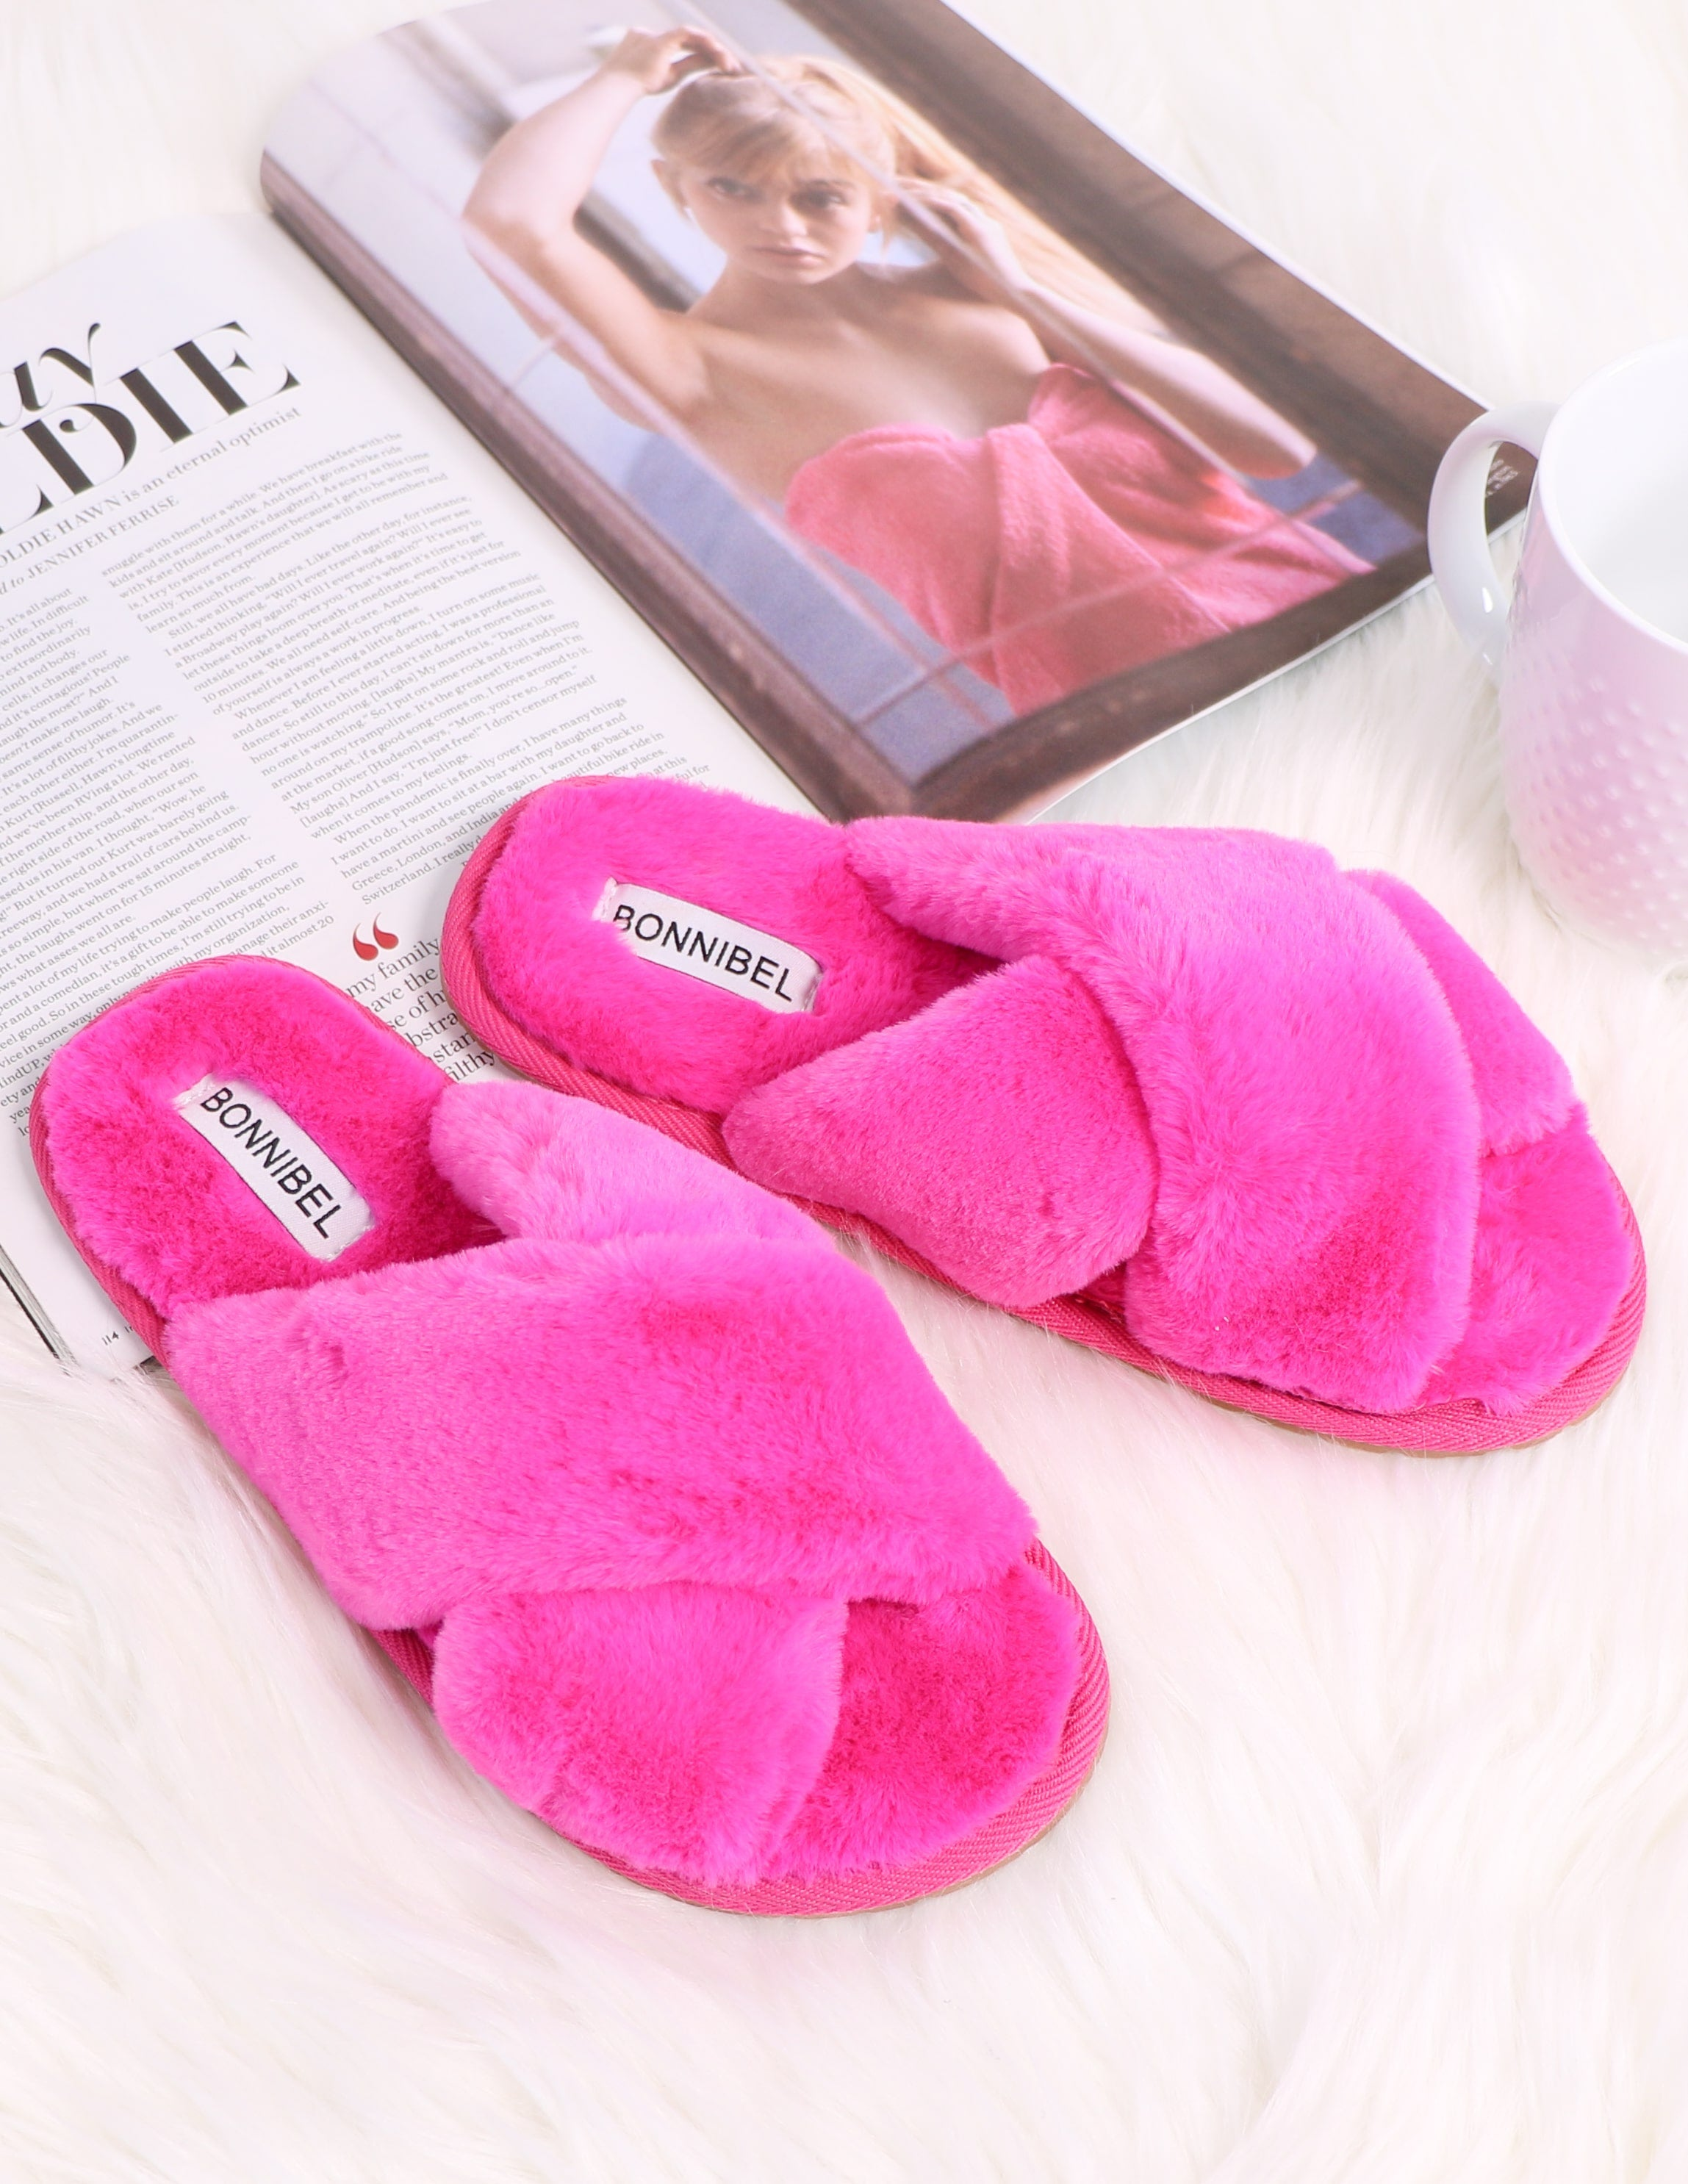 Fuschia fur the dreamers slipper on magazine and white fur rug - elle bleu shoes